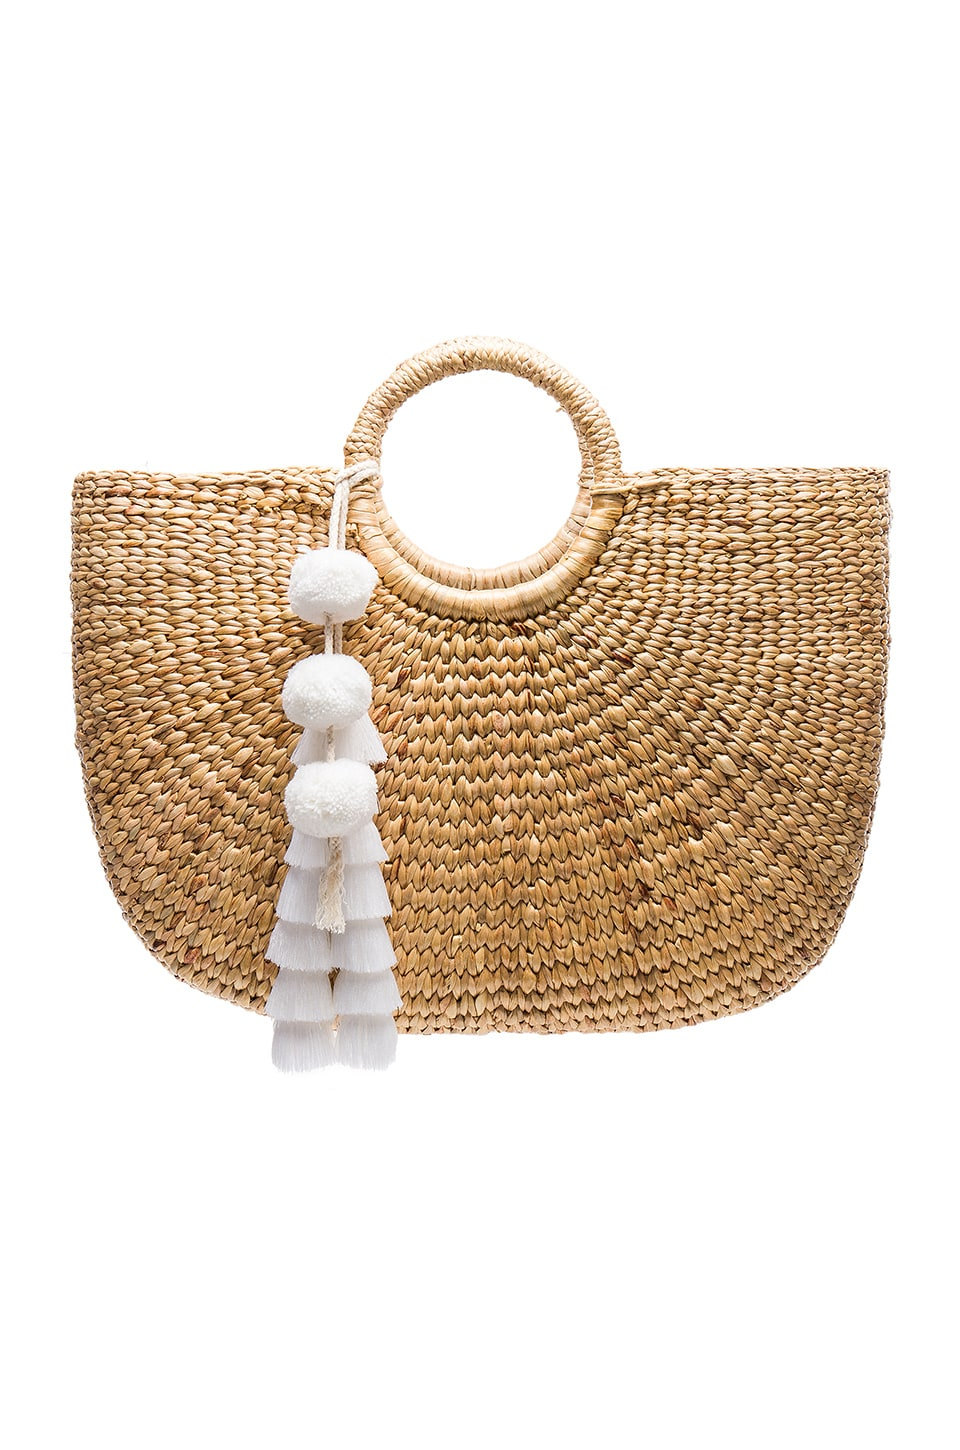 JADEtribe Large Basket Tote in White